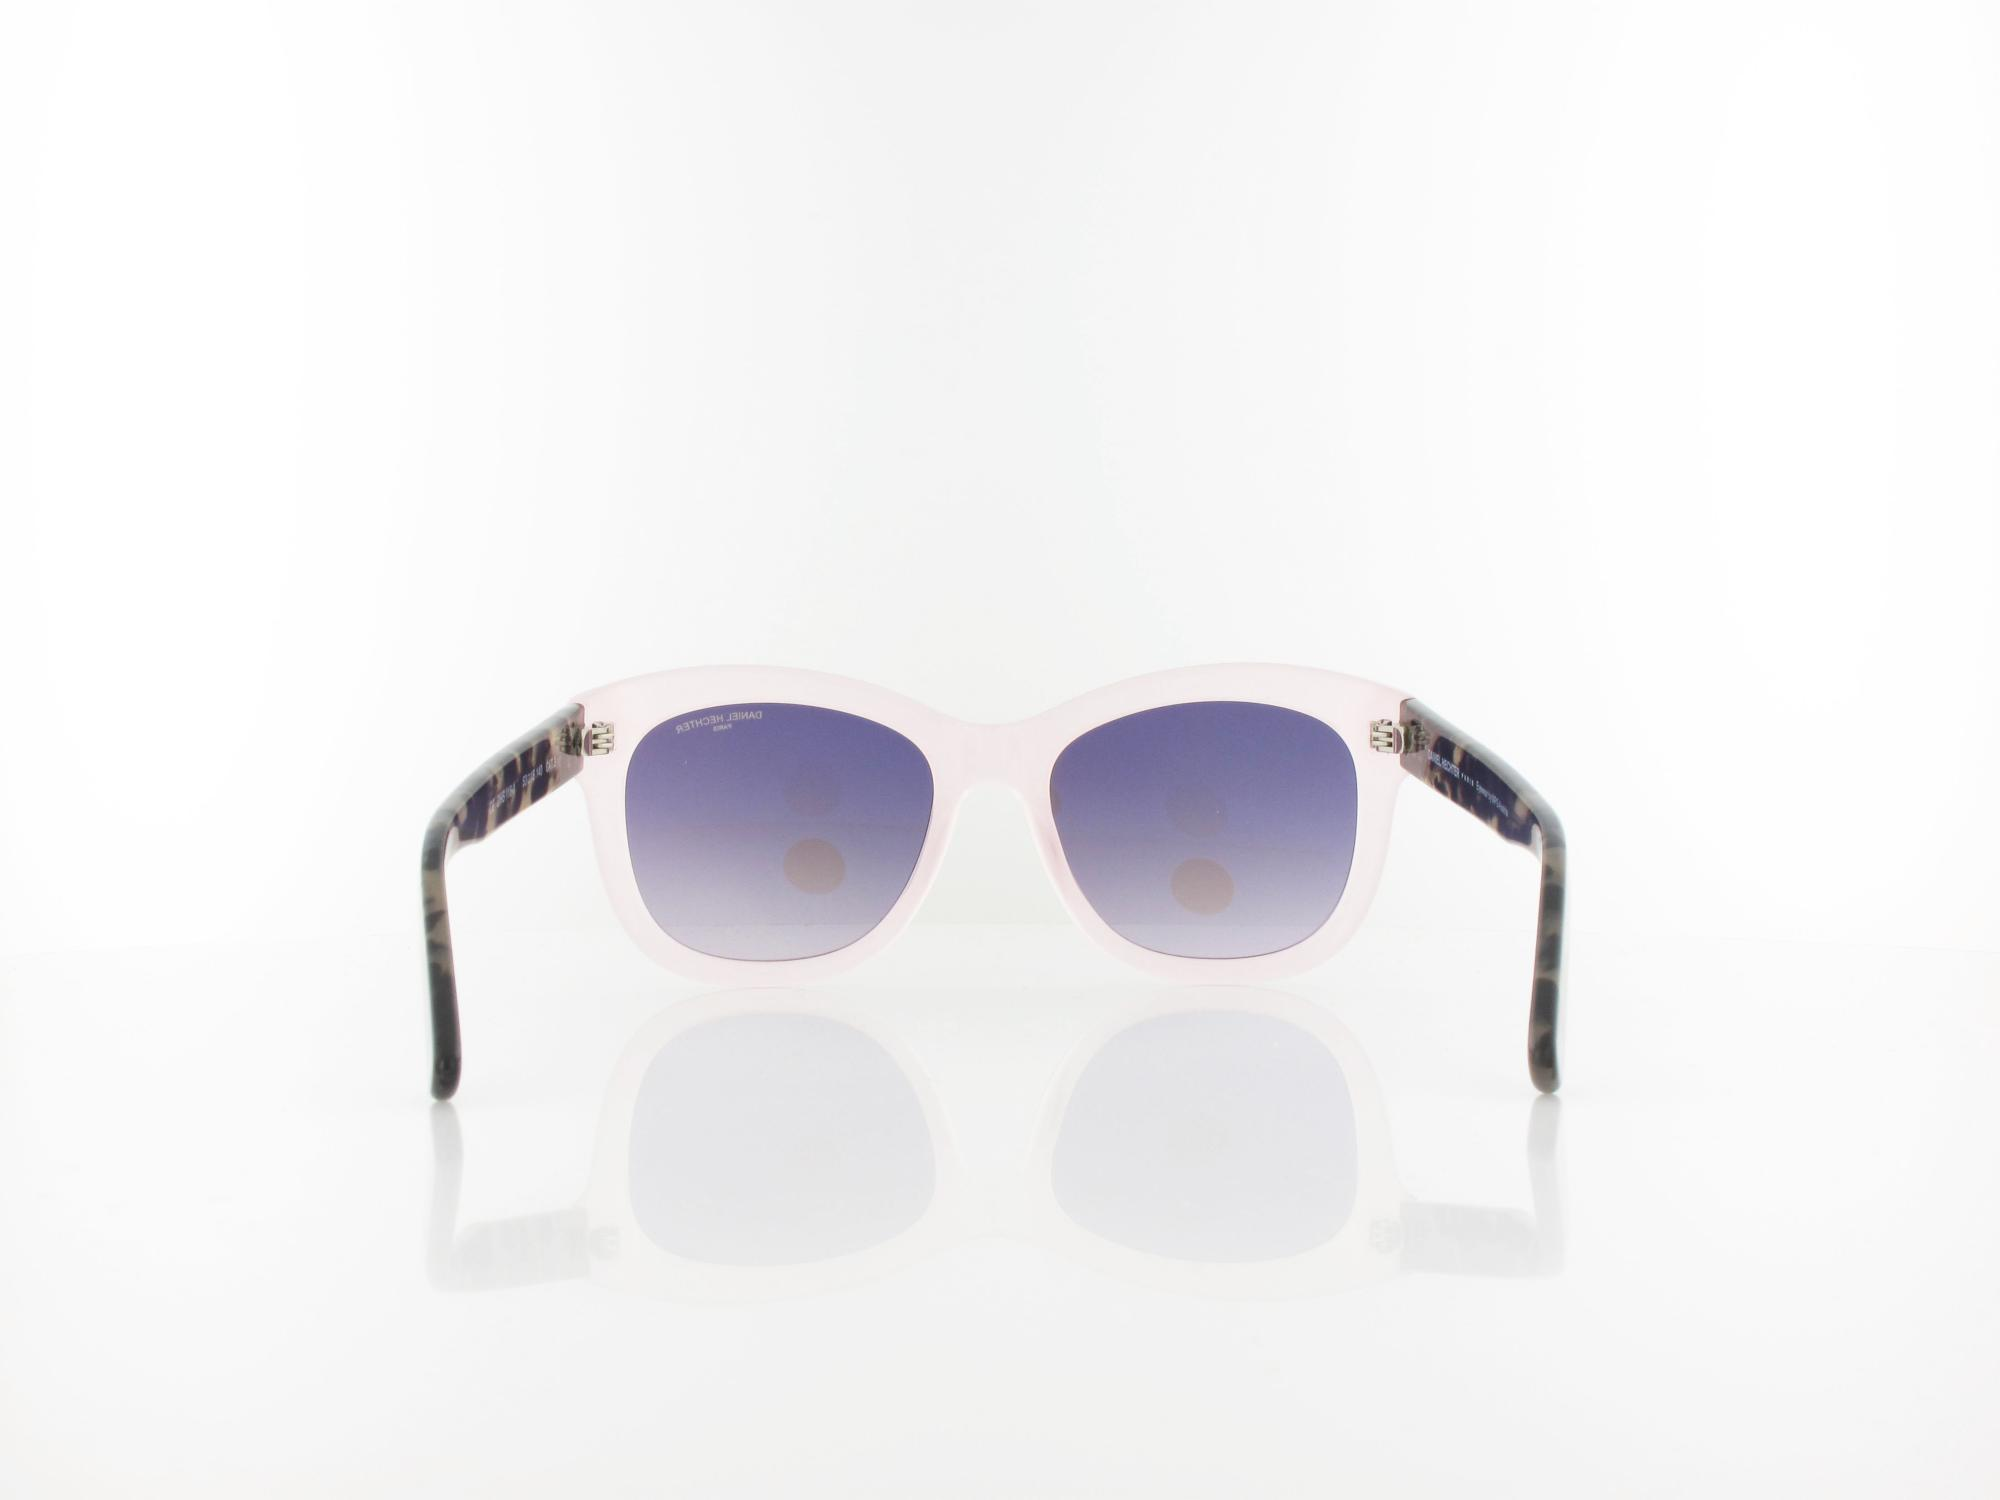 Daniel Hechter | DHS118-1 53 | rose / grey gradient